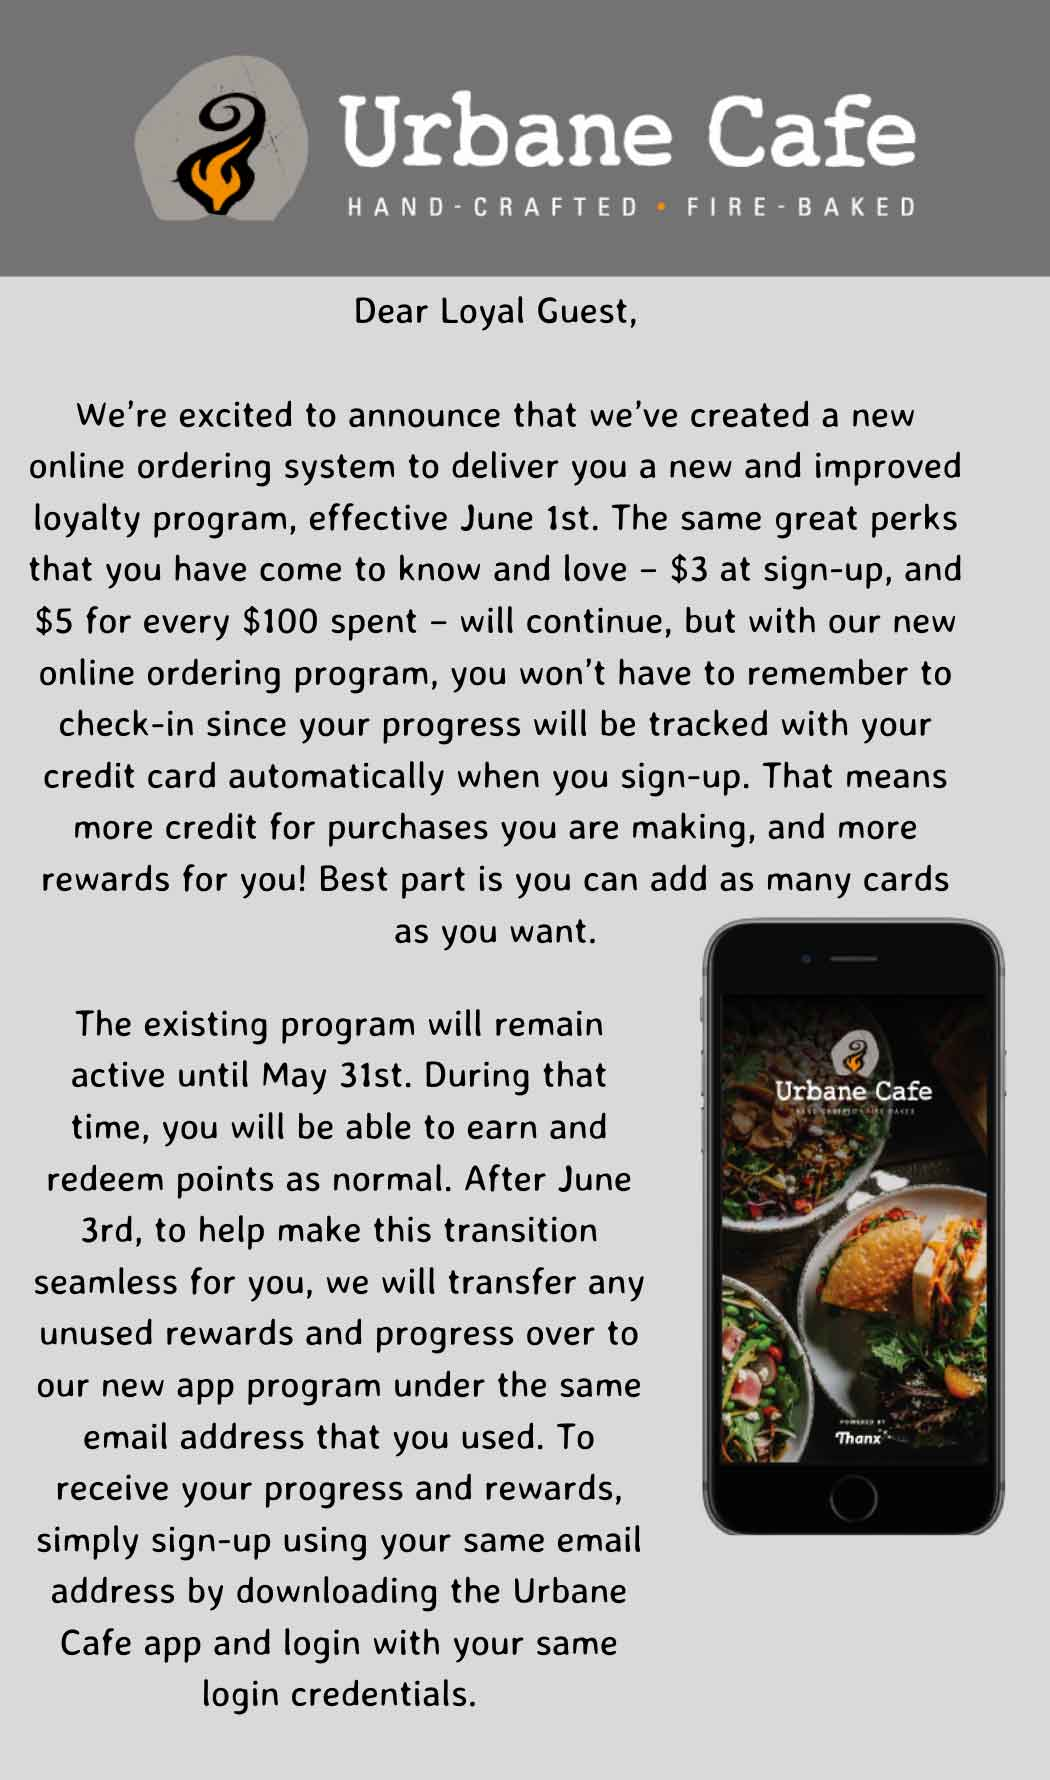 Urbane Cafe: Loyalty Transition Email